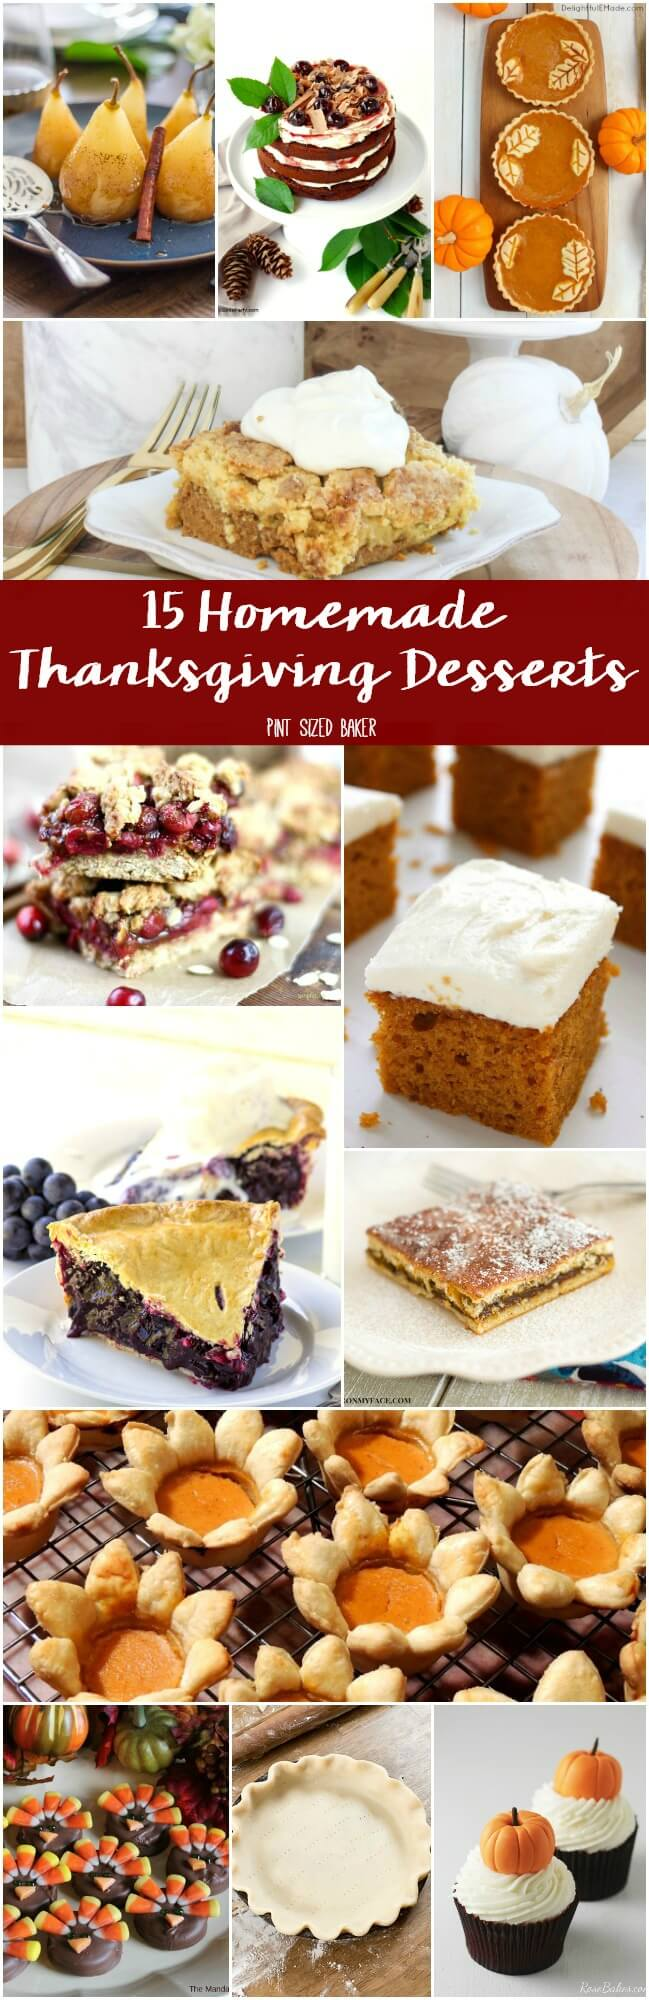 Homemade Thanksgiving Dessert Ideas that are easy to make ahead of time so that you don't have to stress out on Thanksgiving.